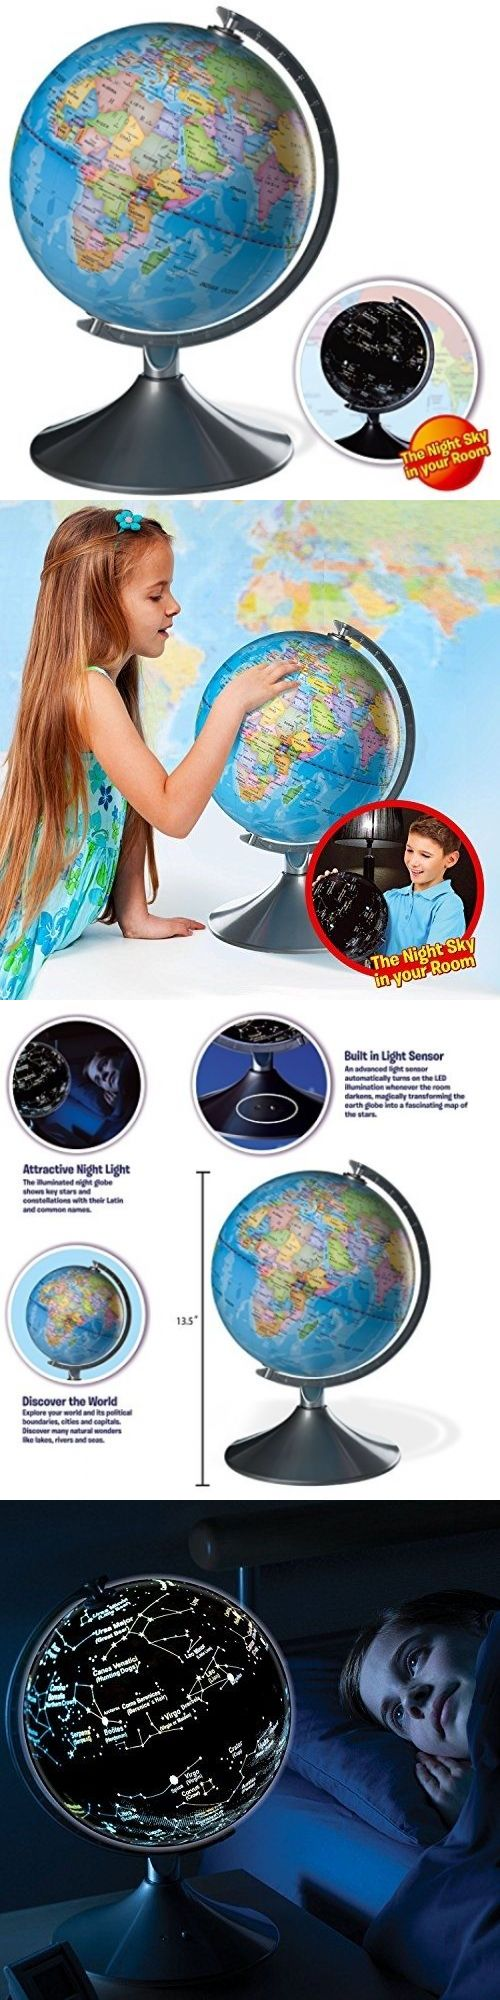 Geography and History 11733: Interactive Globe For Kids, 2 In 1, Day View World Globe And Night View Map -> BUY IT NOW ONLY: $83.95 on eBay!